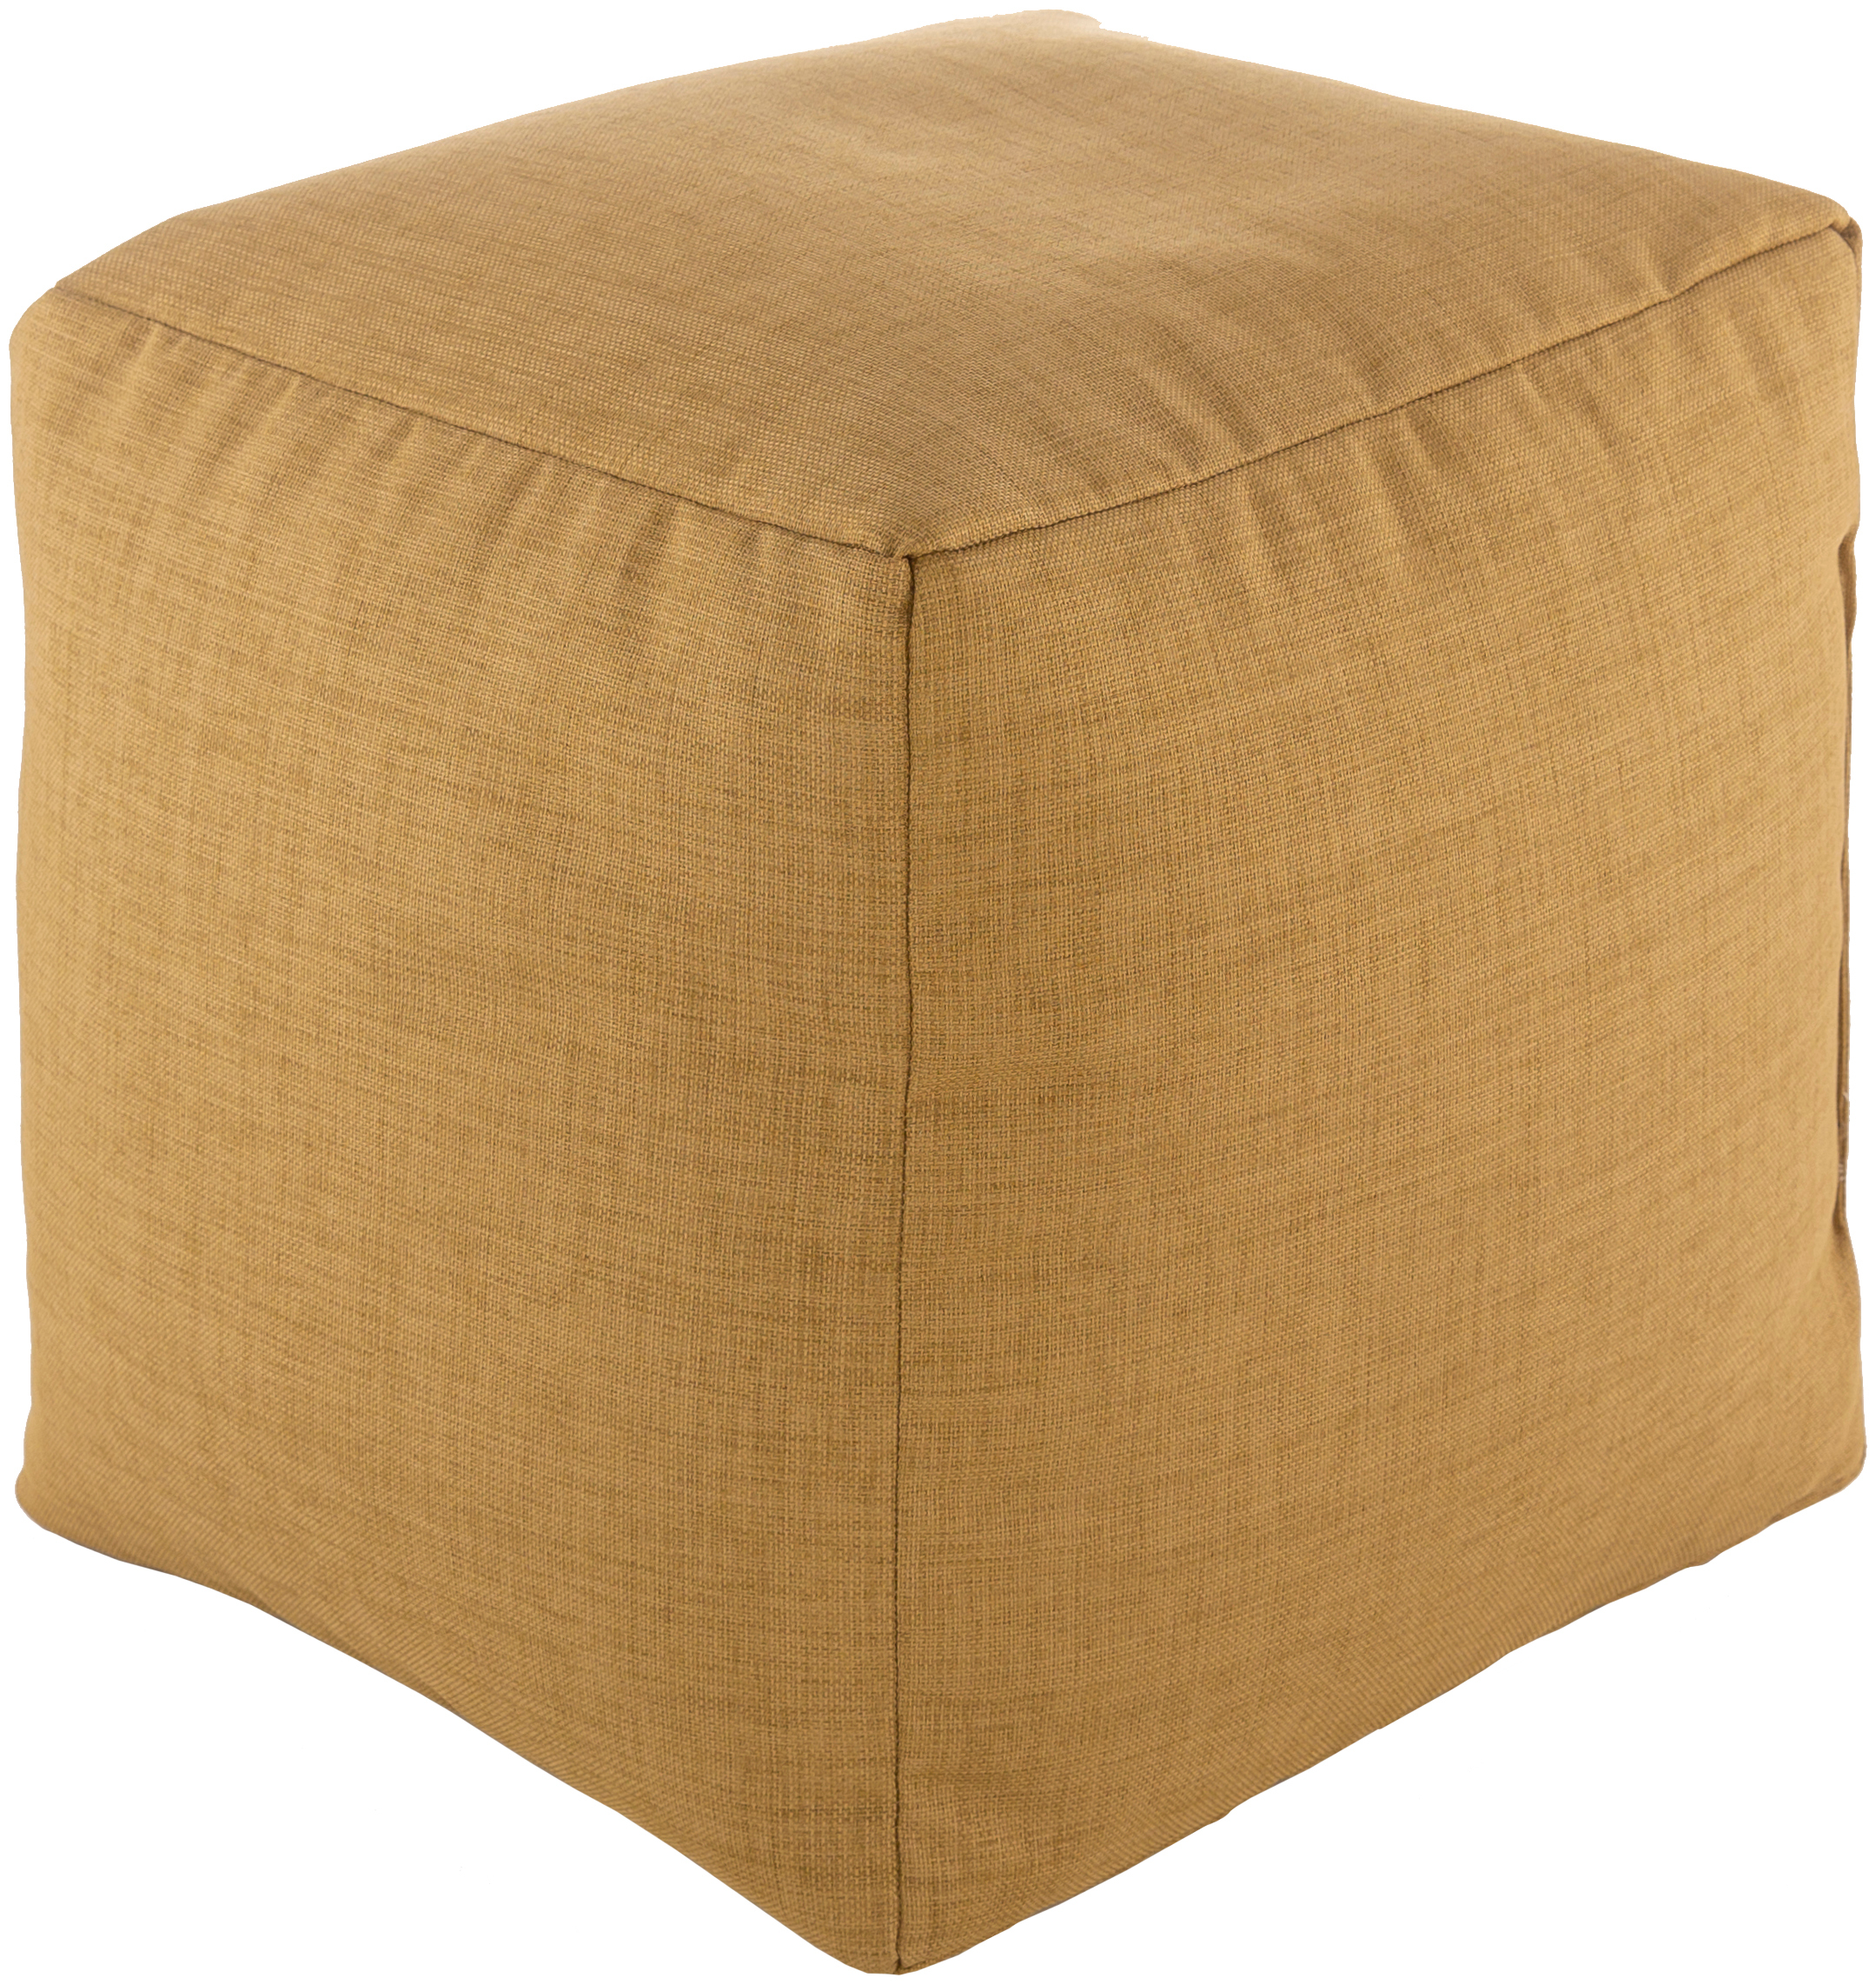 surya storm traditional cube pouf with tan finish srpf004-181818